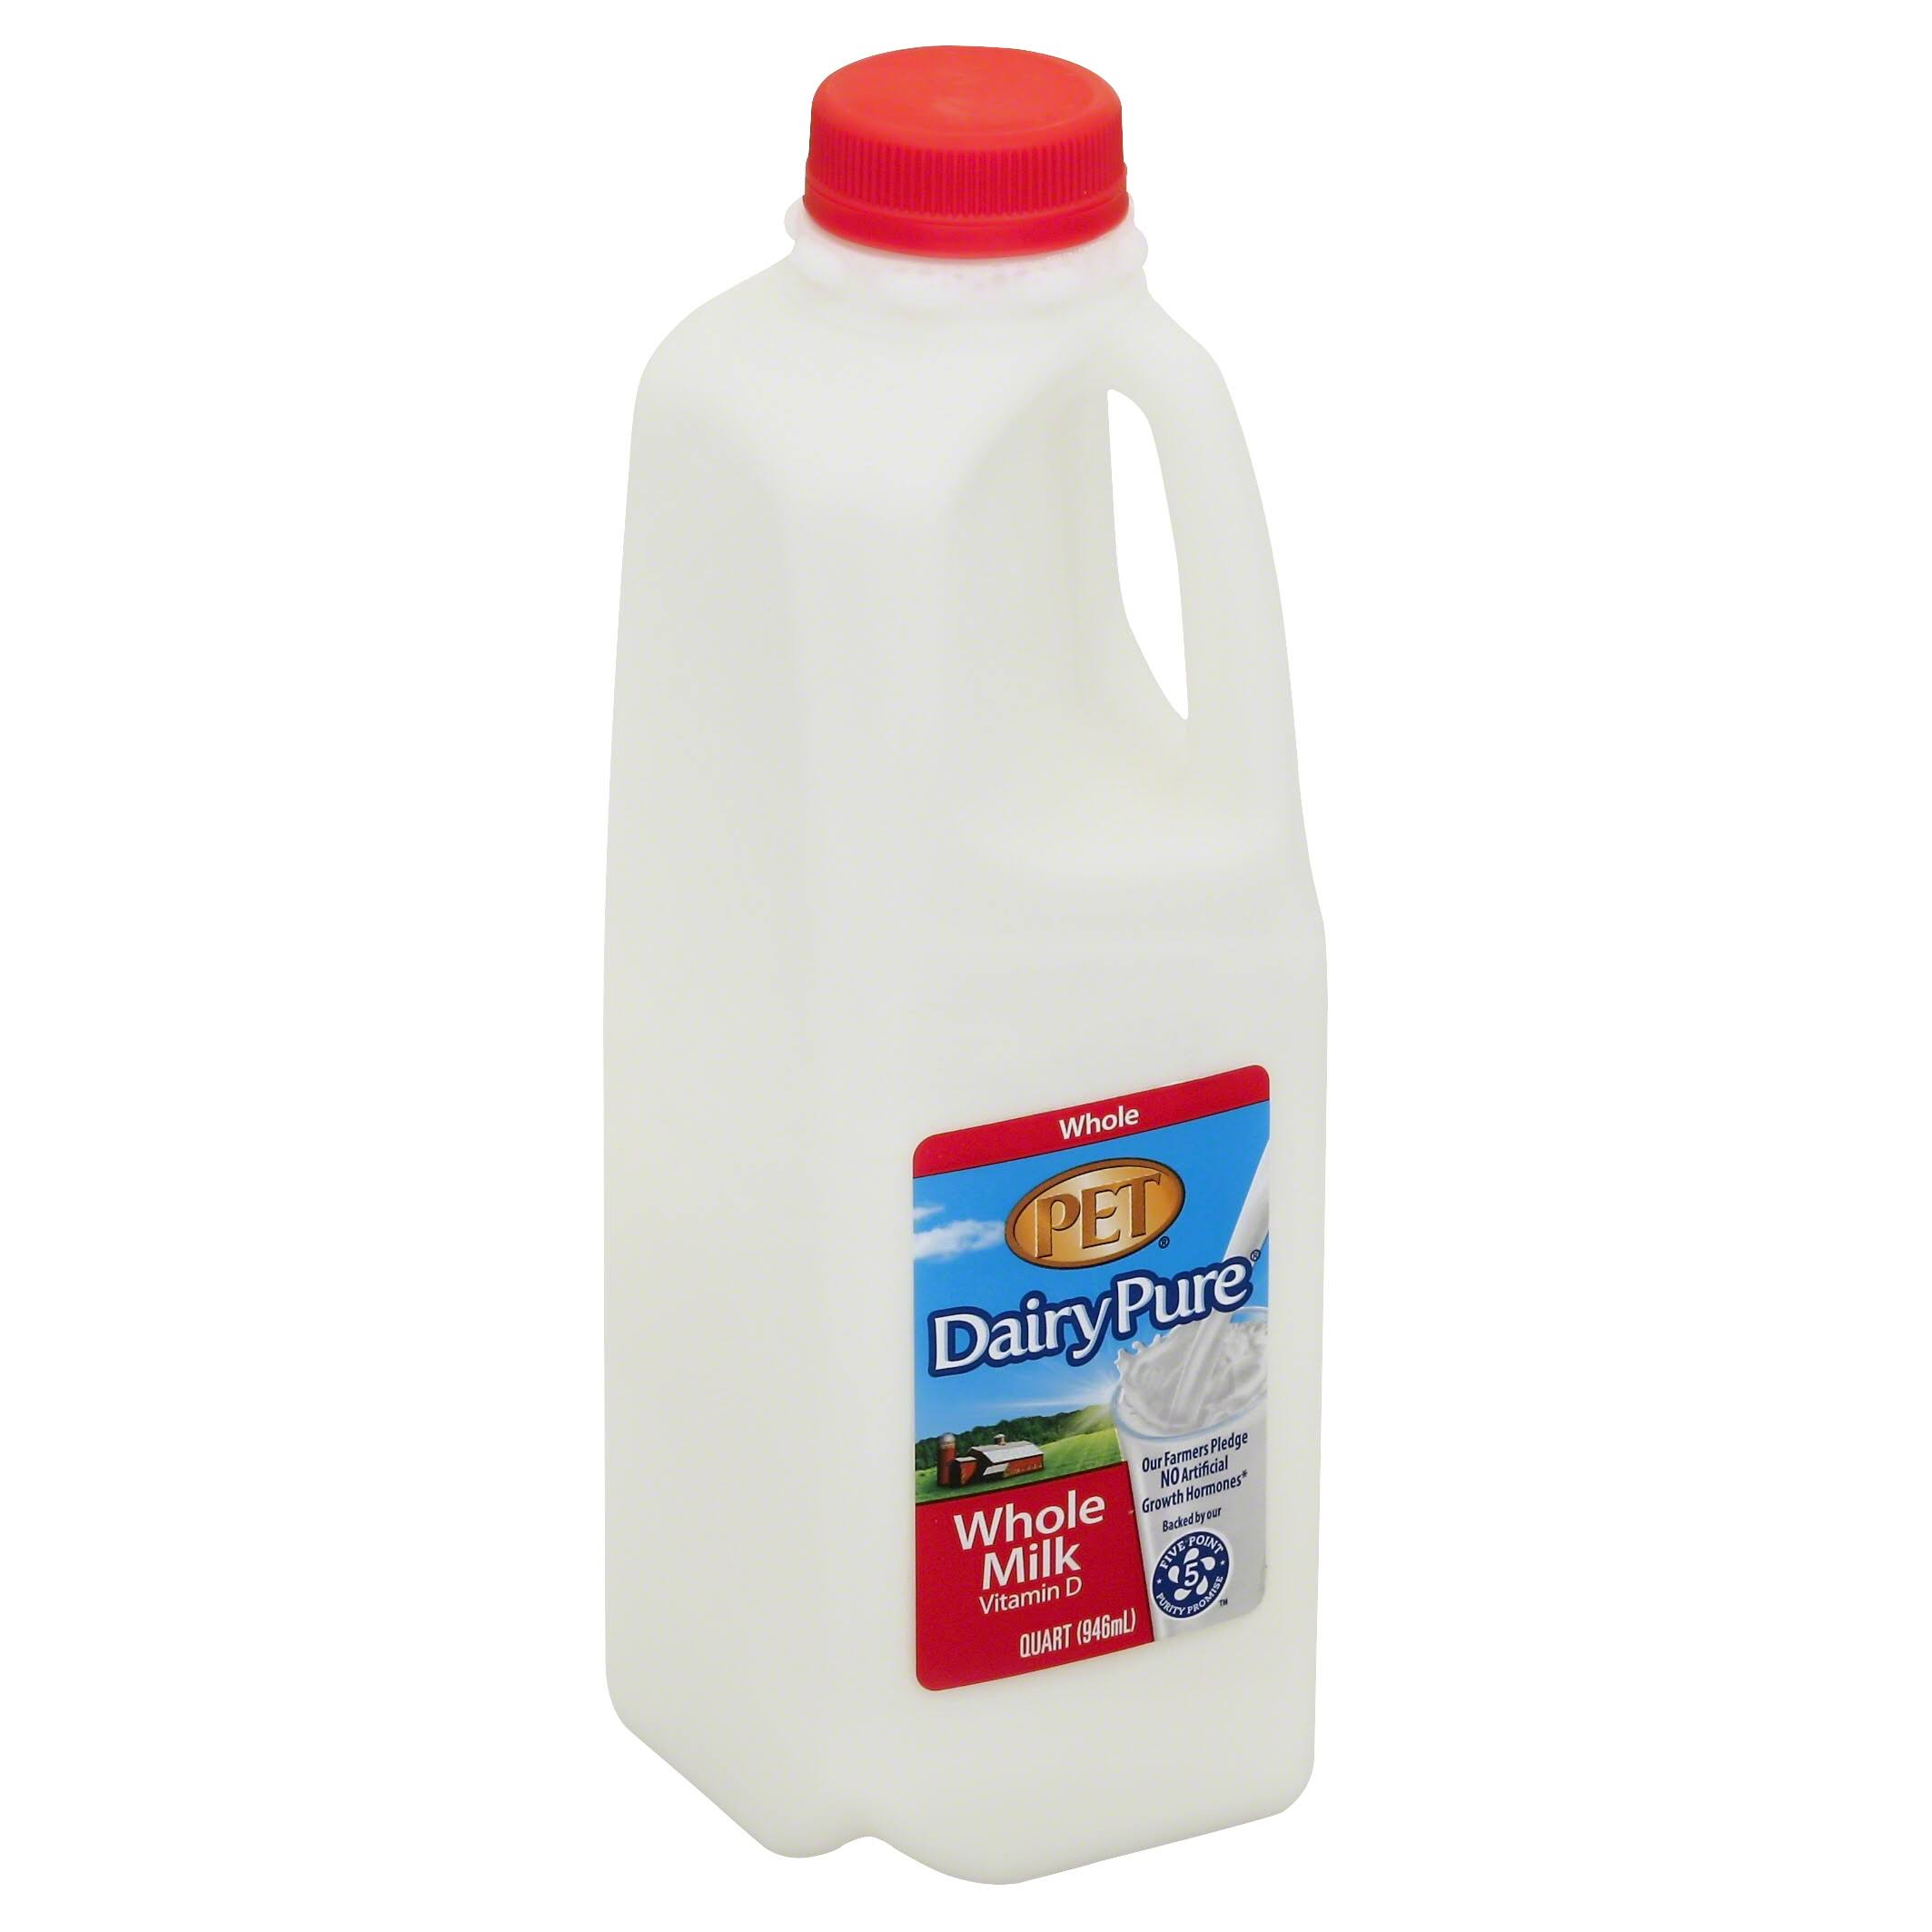 Berkeley Farms Dairy Pure Whole Milk - 1qt